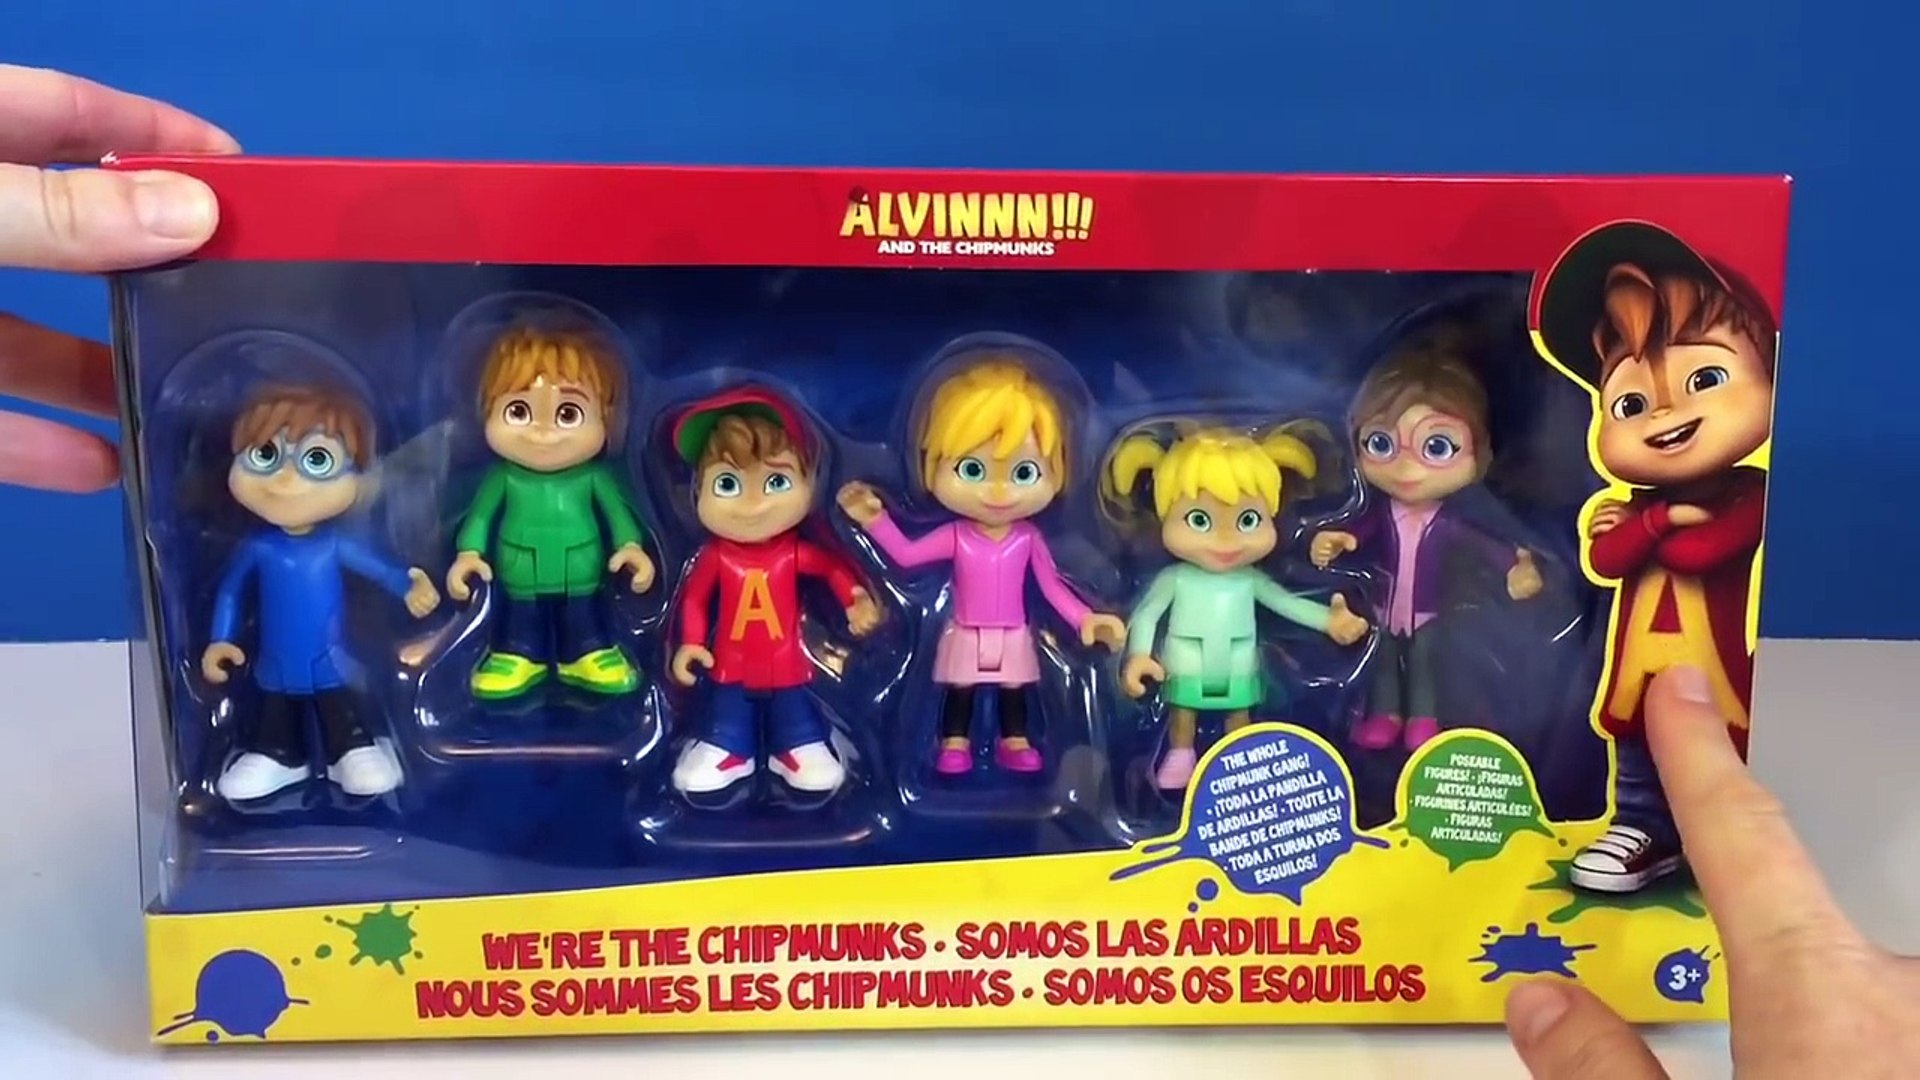 Alvin And The Chipmunks And Chipettes Toy Figure Unboxing Opening